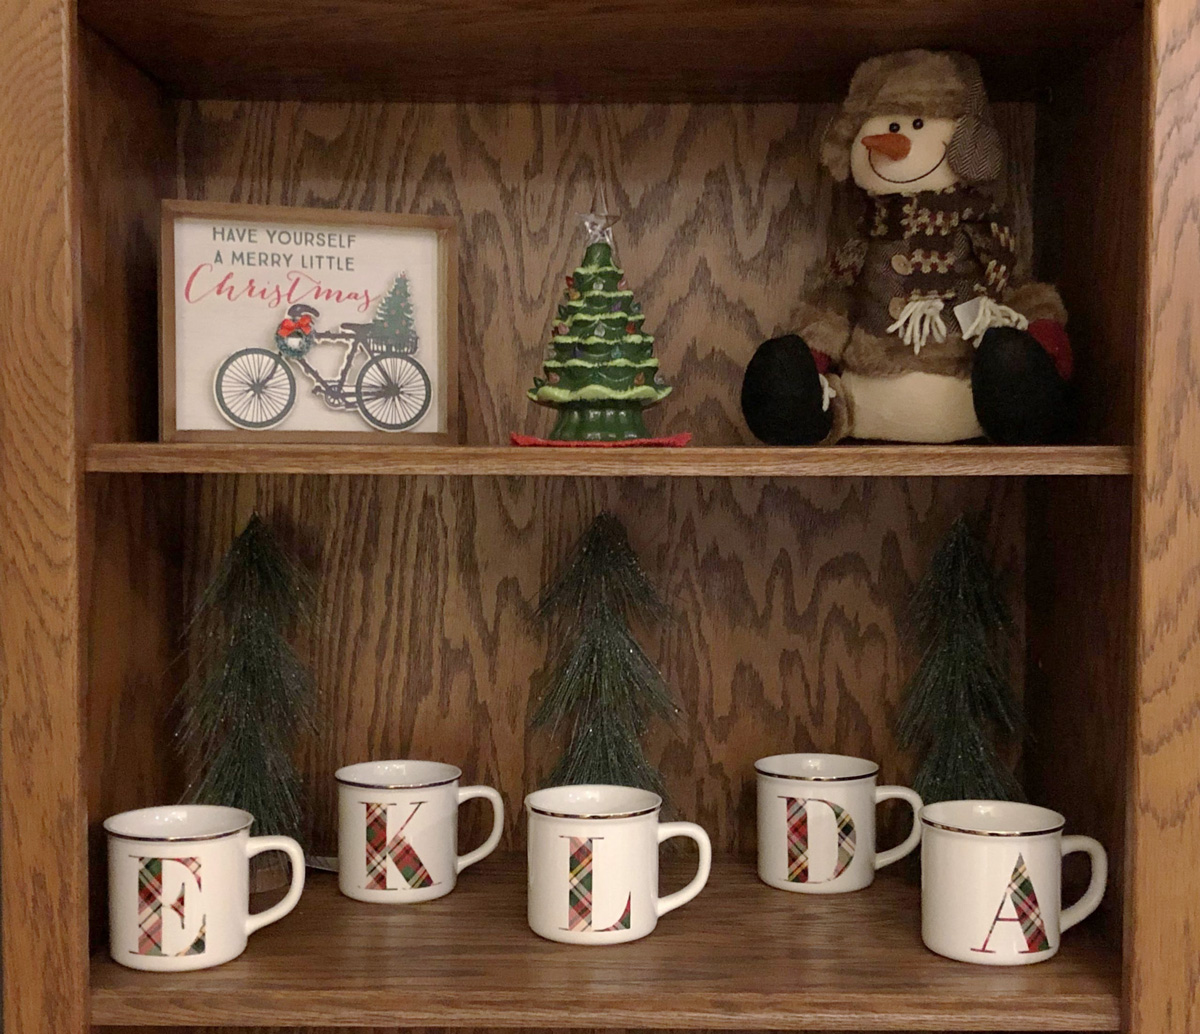 Shelf with Christmas decorations - Remembering Our Babies during the Holidays